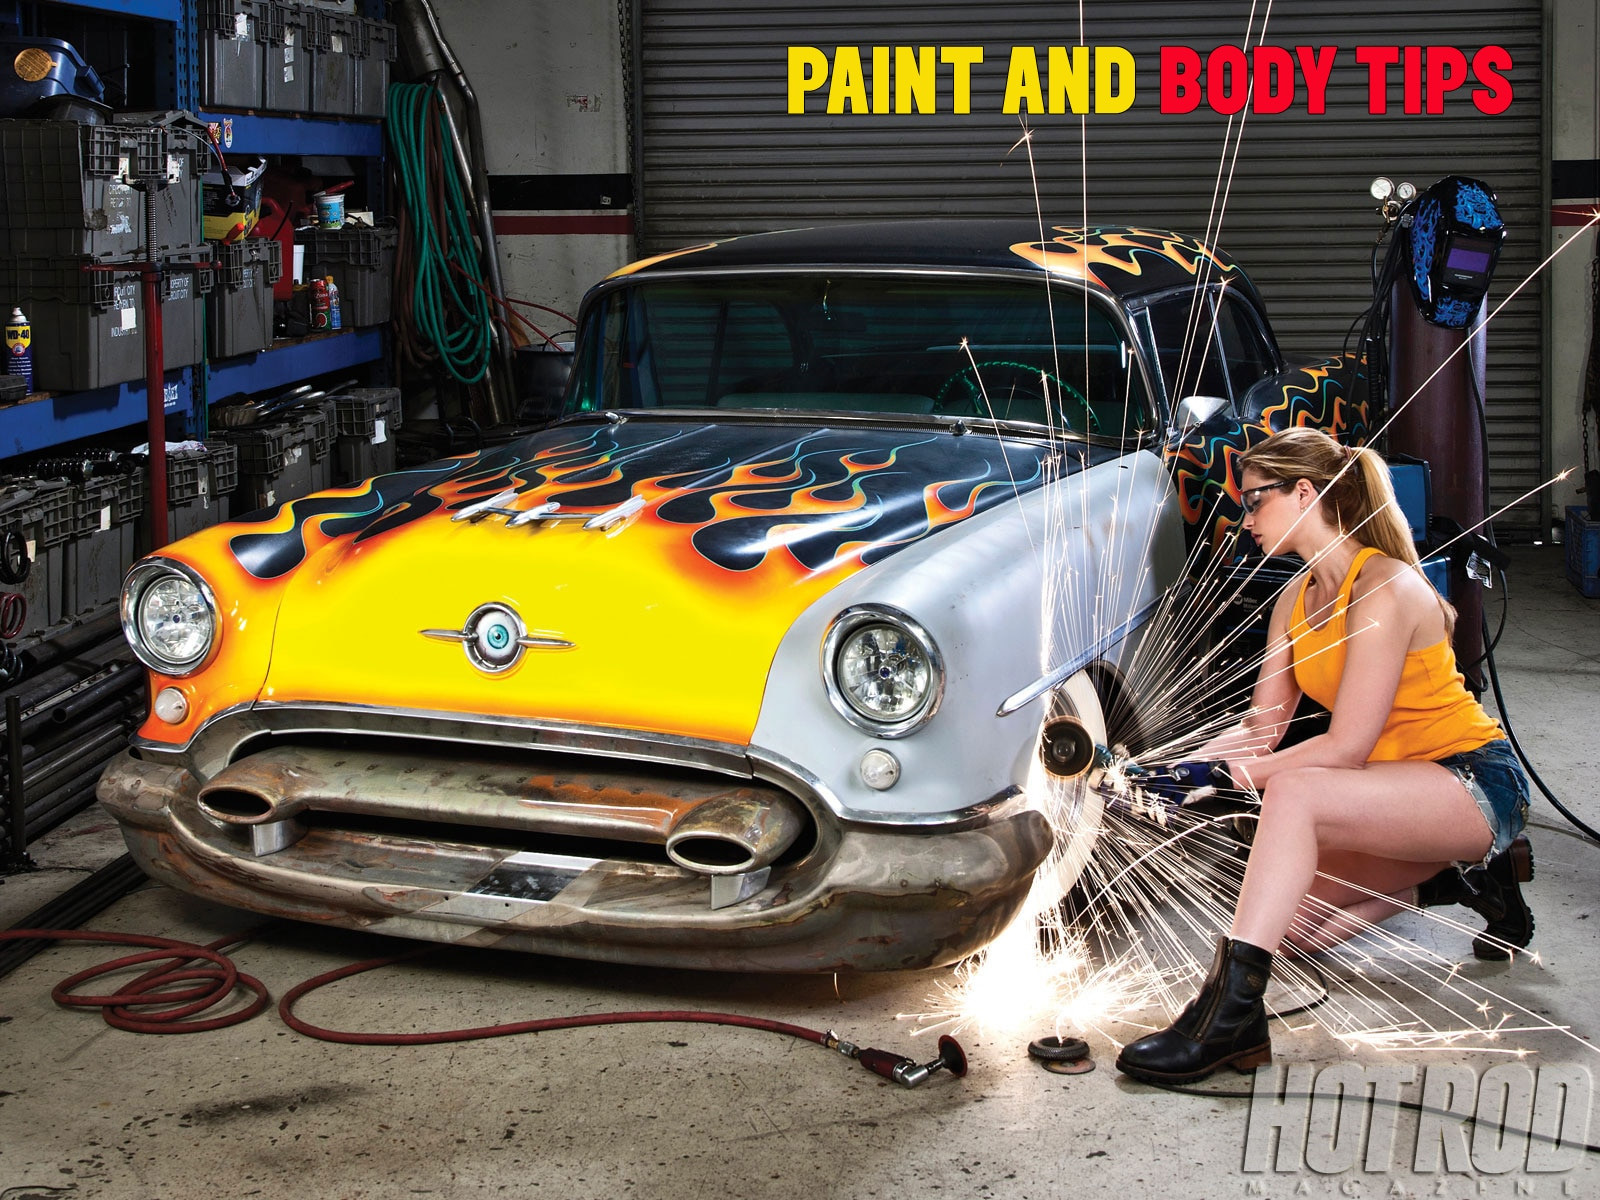 Best ideas about DIY Autobody Repair . Save or Pin D I Y Auto Bodywork Trick Stuff You Can Do To Your Car Now.